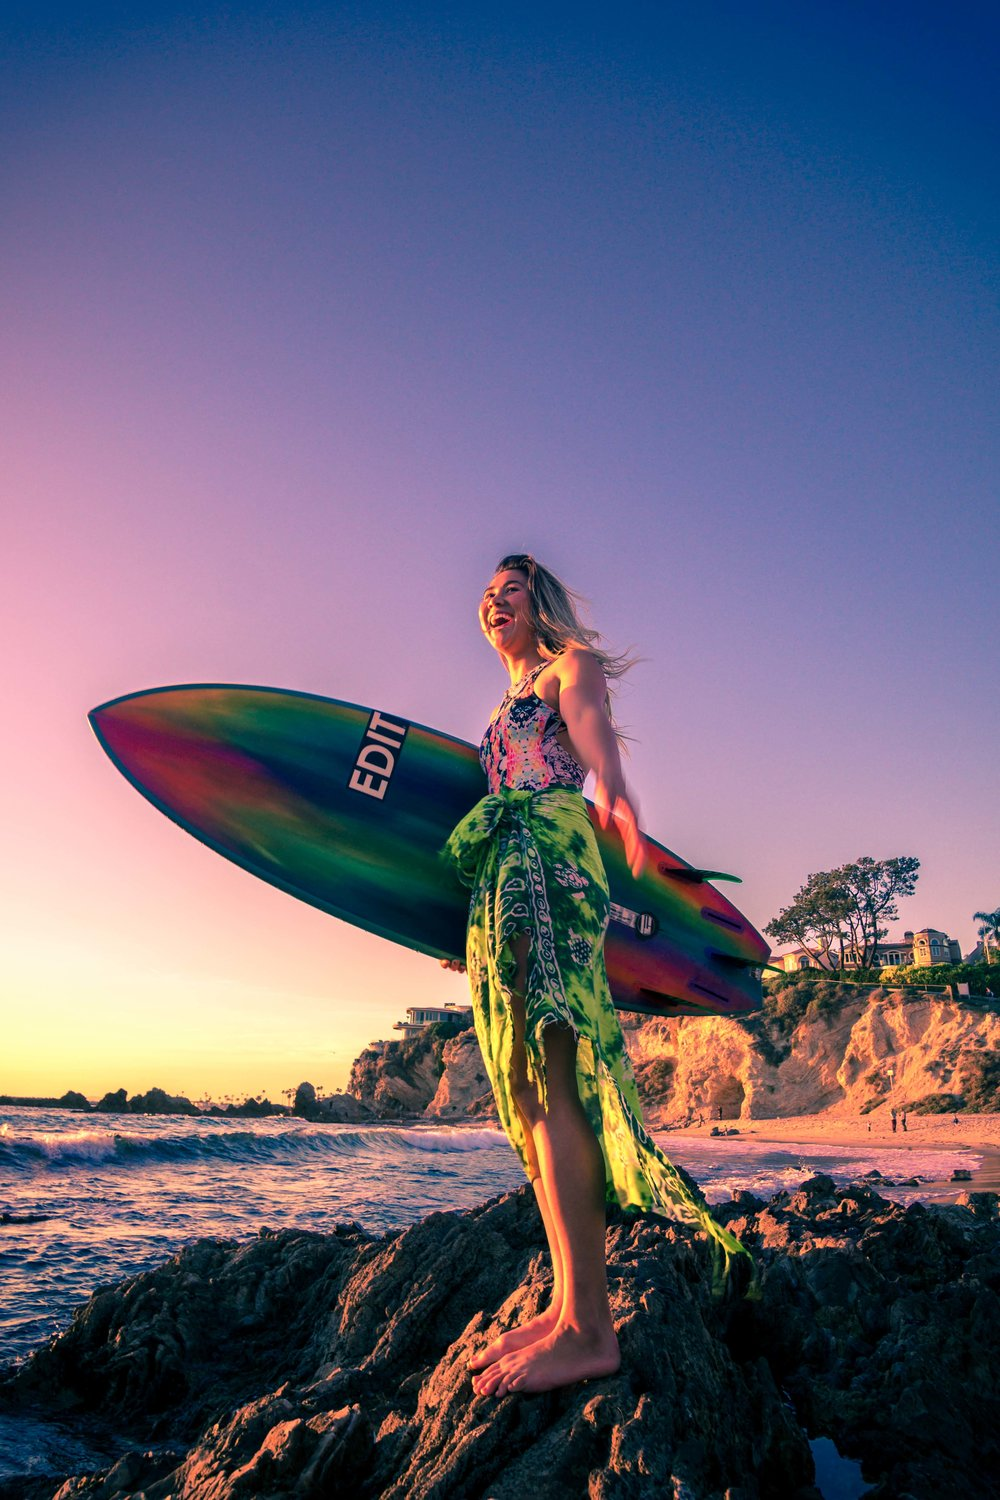 Portrait of a surfer girl with her vibrant attire and hand painted surfboard at the little corona beach